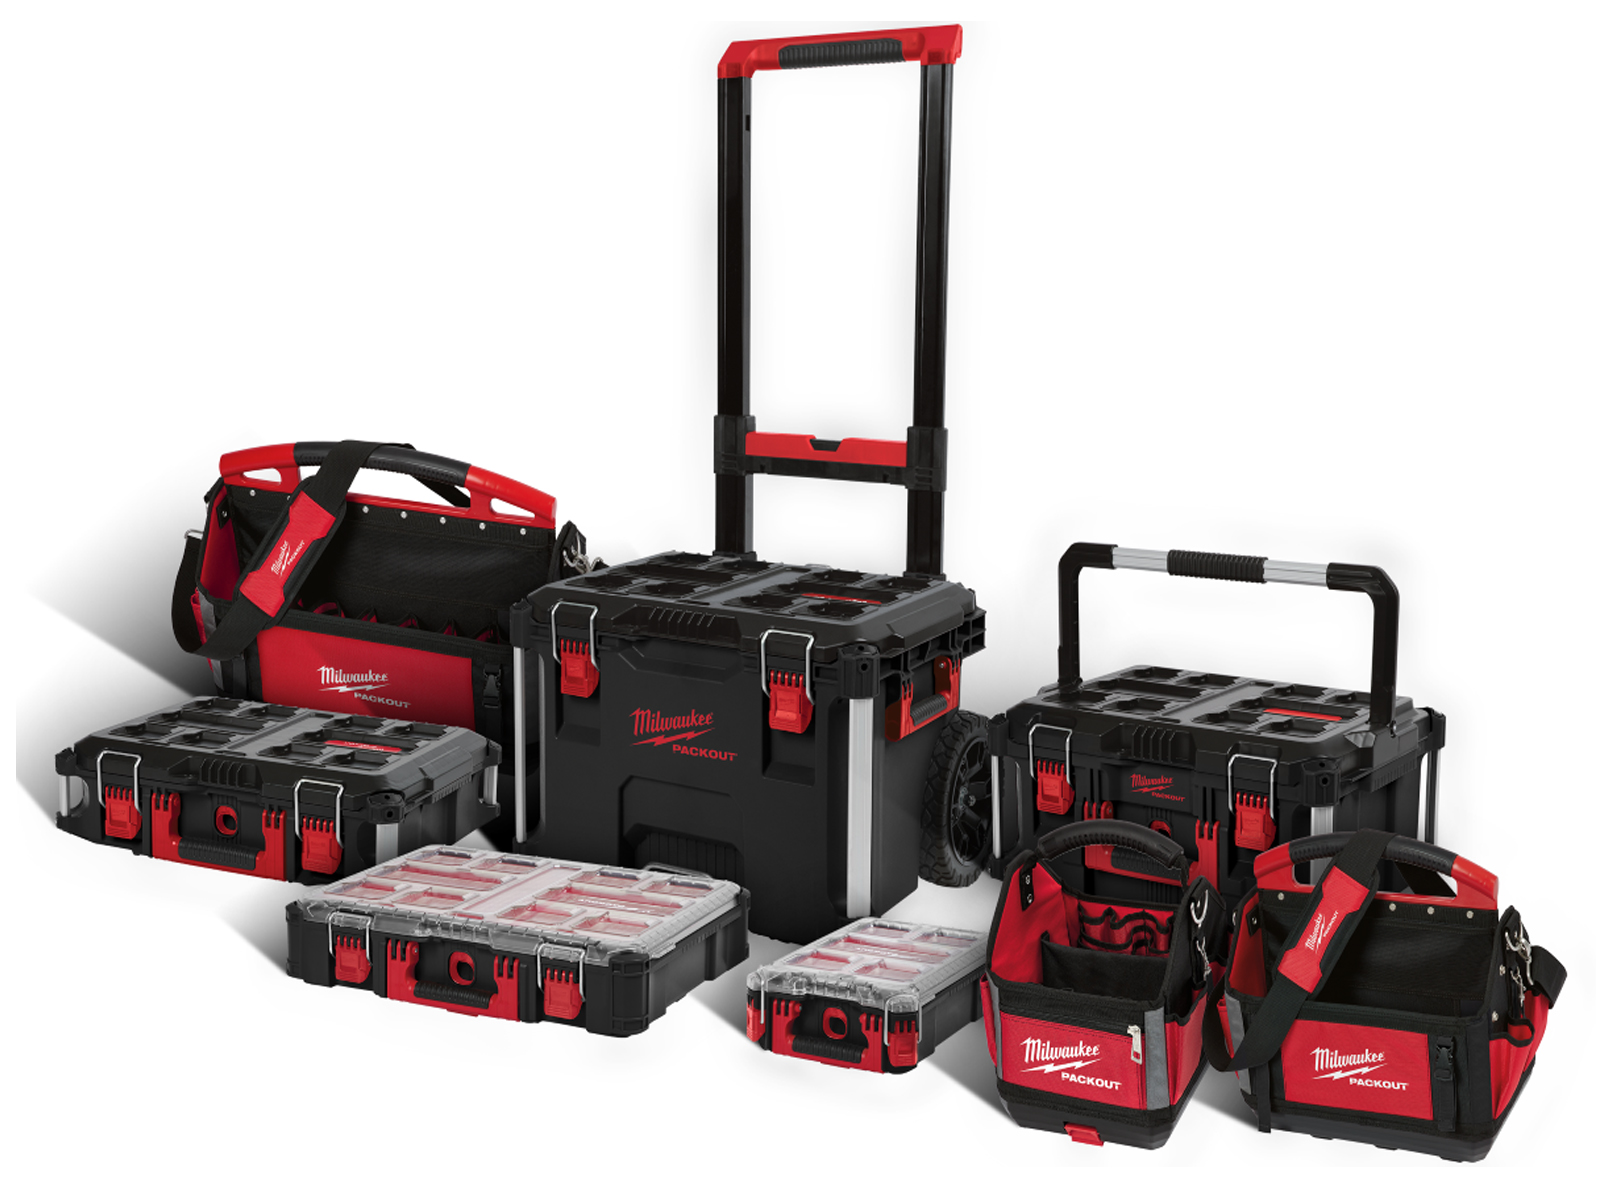 MILWAUKEE PACKOUT - PACKOUT TROLLEY / BOX 2 / BOX 3 / ORGANISER'S & TOTE BAGS